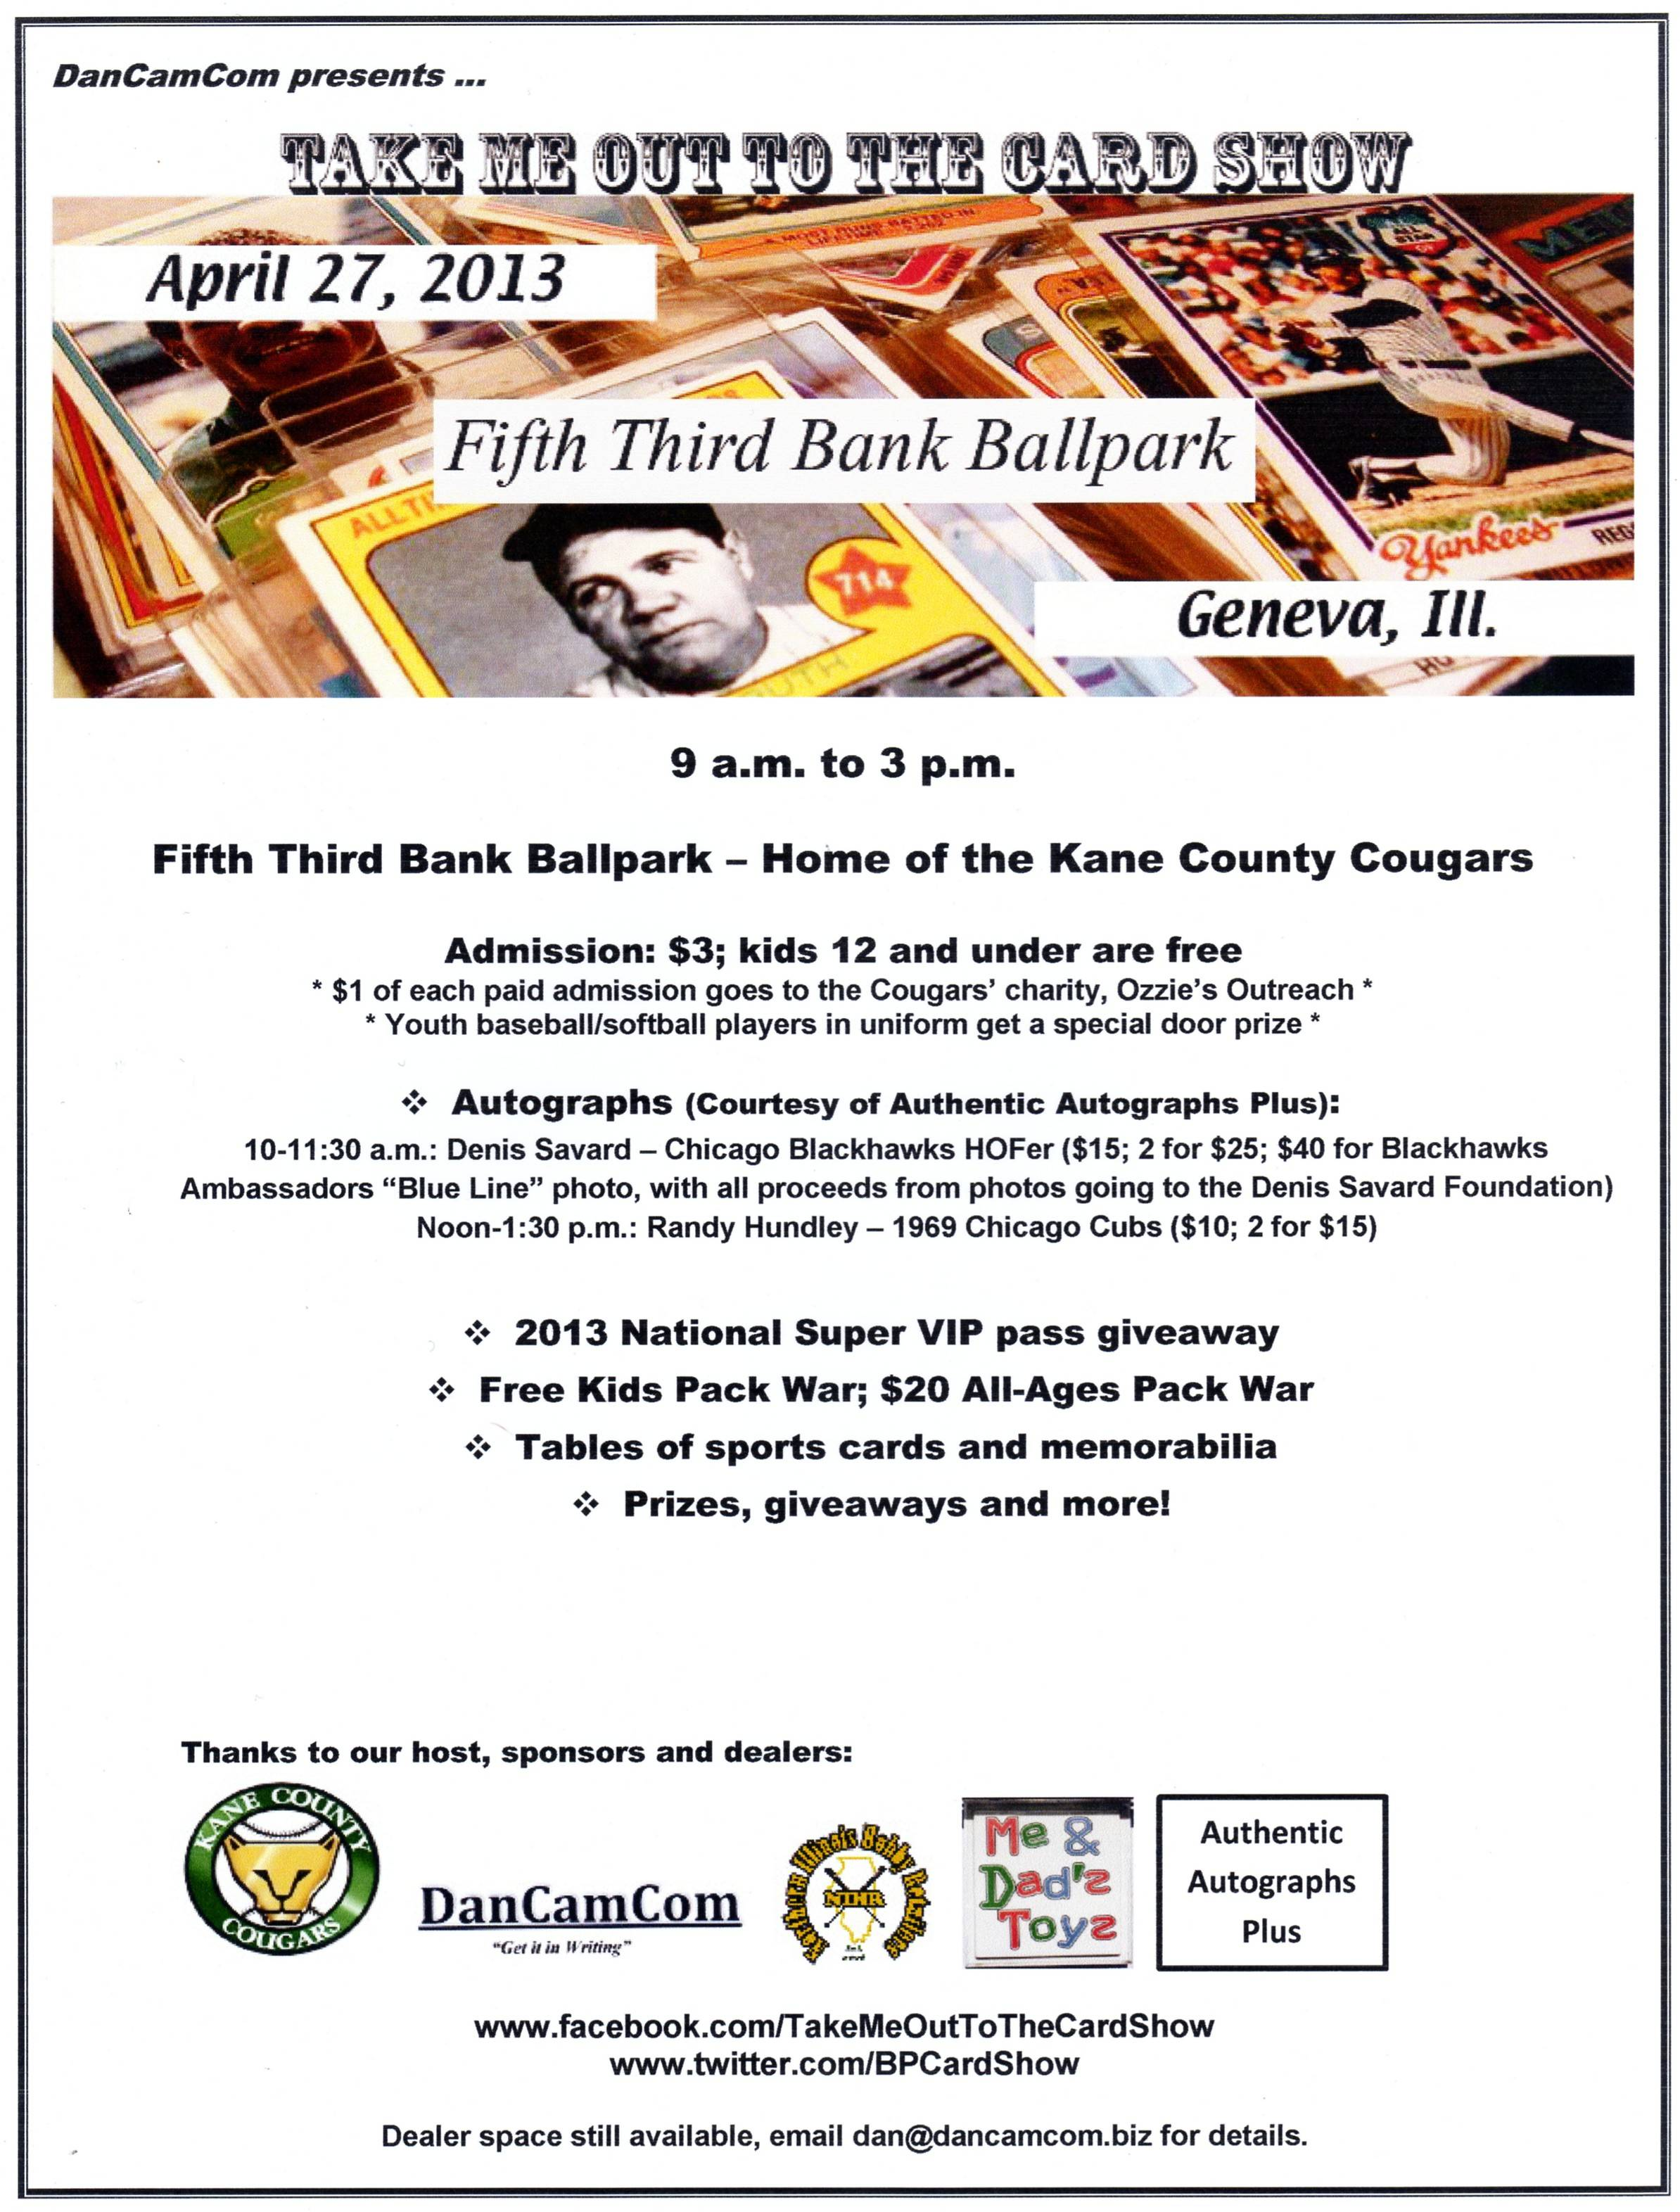 Take Me Out To The Card Show takes place April 27 at the home of the Kane County Cougars, Fifth Third Bank Ballpark in Geneva.